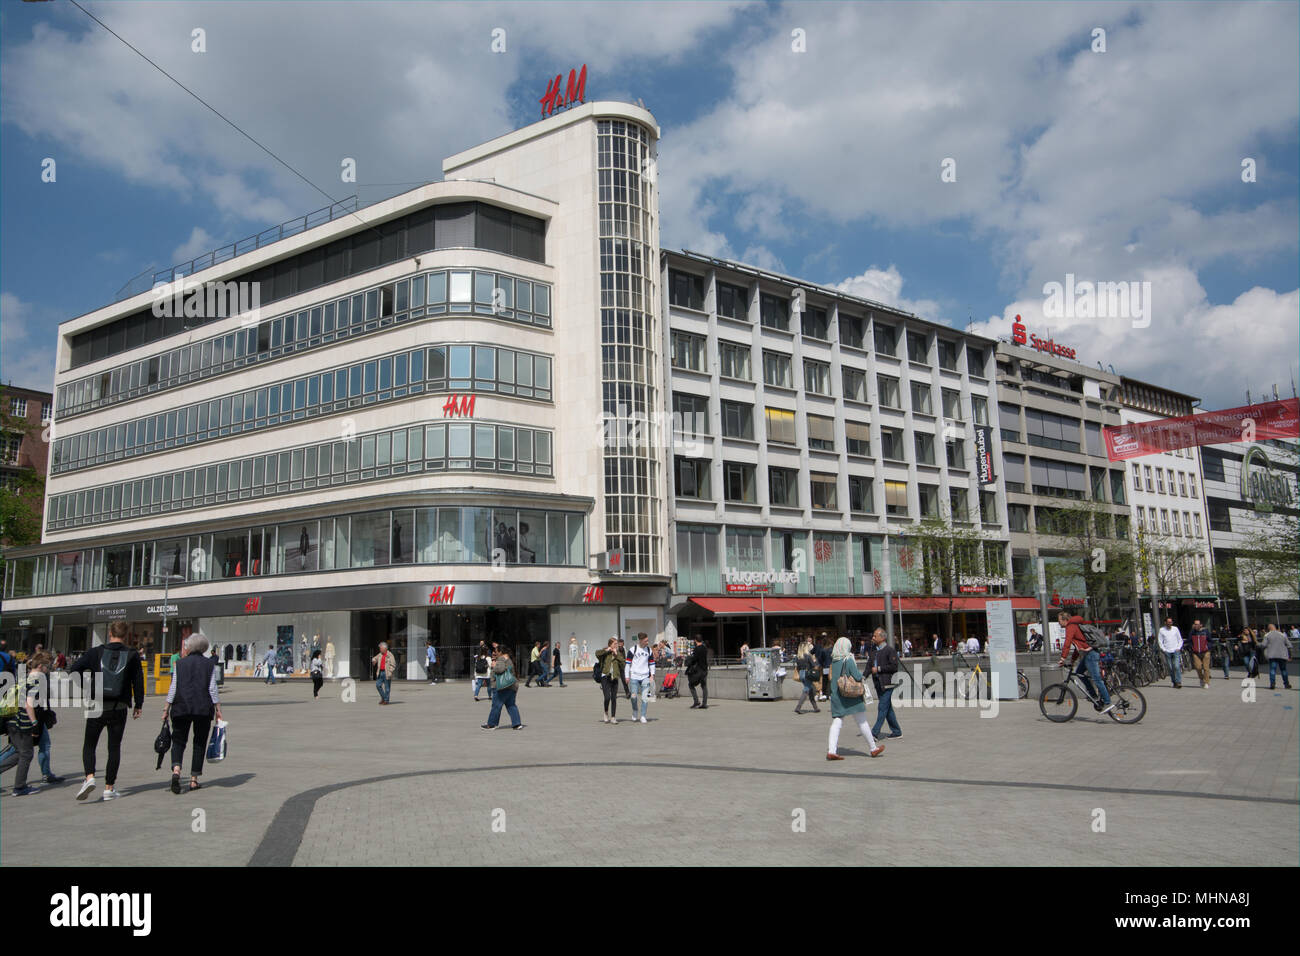 Kröpcke is part of pedestrianised central shopping area of Hanover, Germany. There are plenty of large department stores to chose from - Stock Image